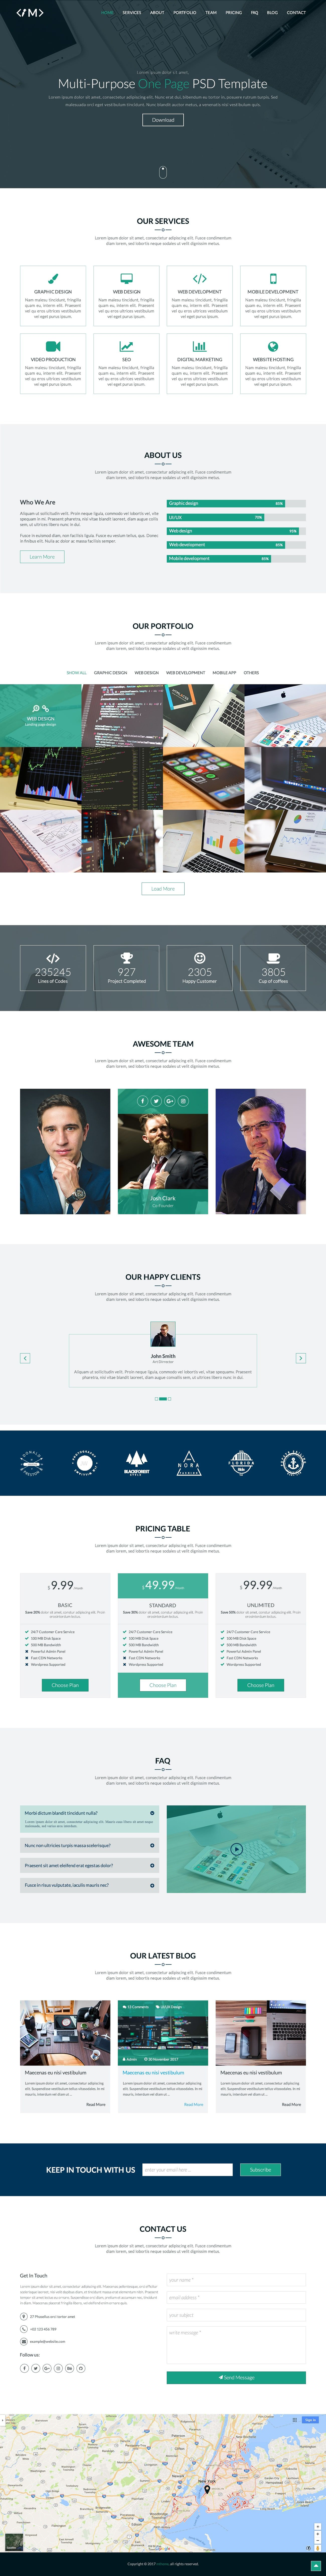 MTheme - Multi-Purpose One Page PSD Template Screenshot 5